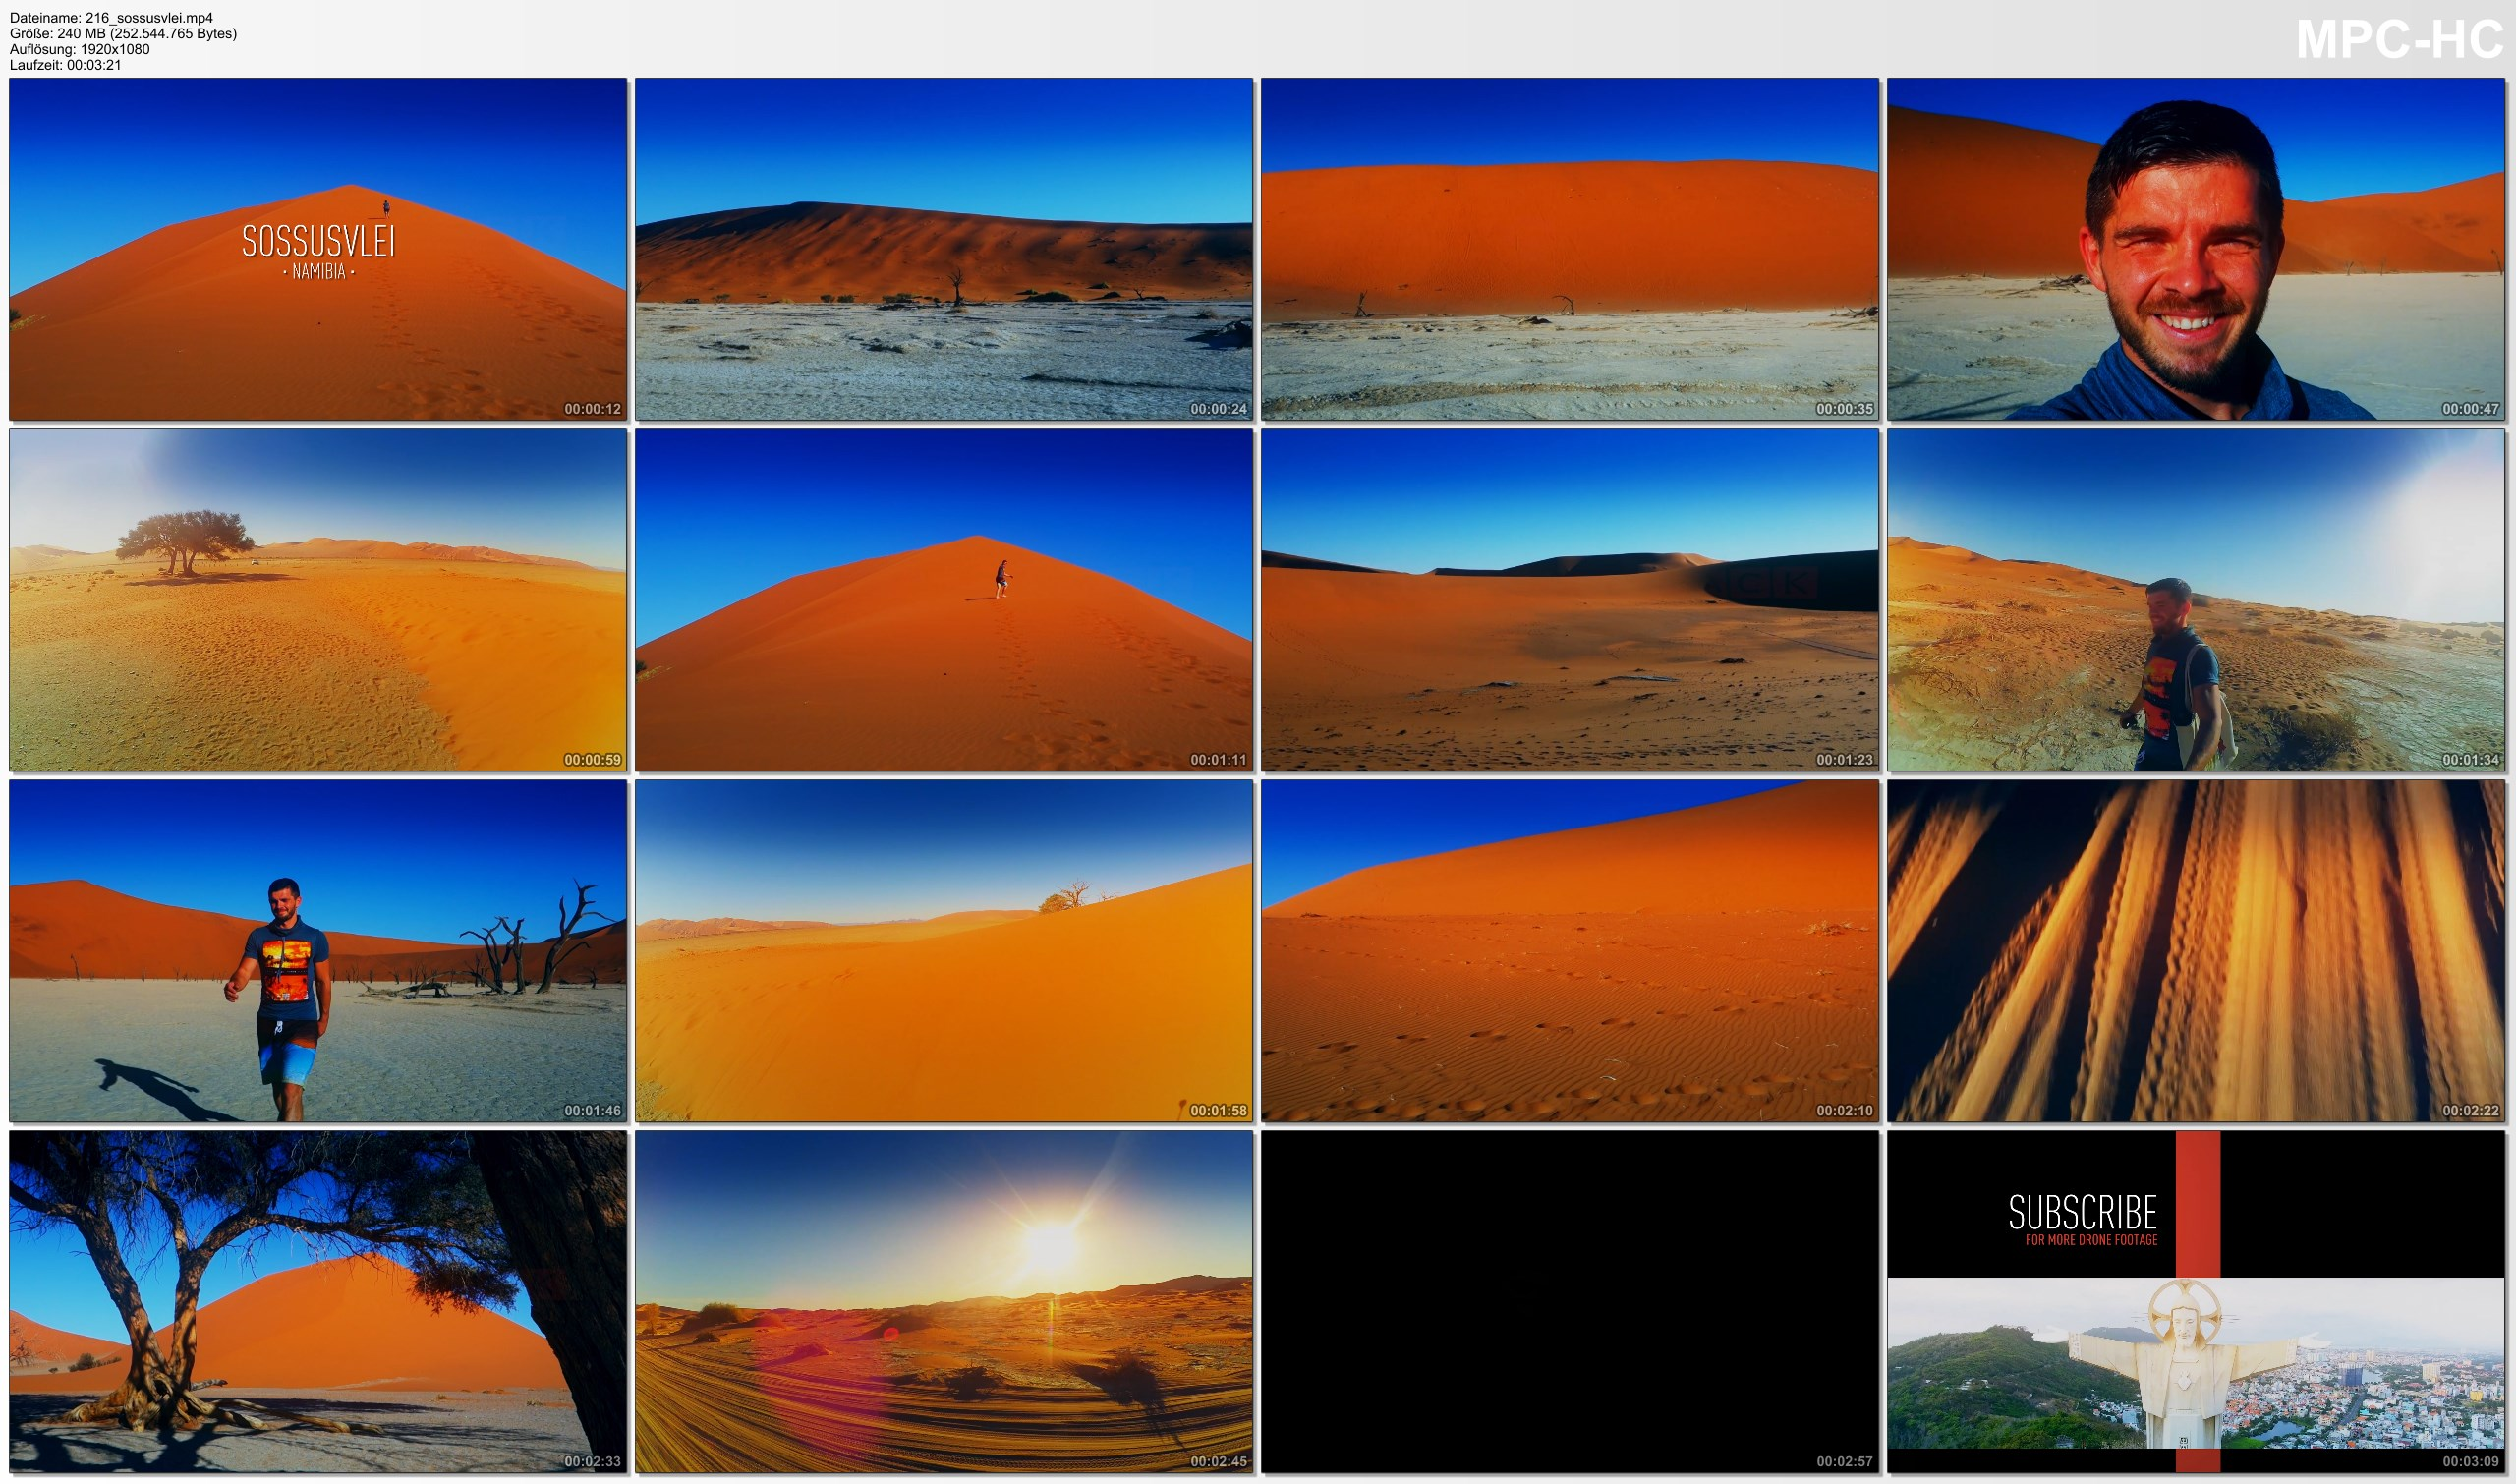 Pictures from Video 【1080p】Footage | Sossusvlei 2019 ..: Infamous Namib Desert | Dunes | Deadvlei NAMIBIA *TRAVEL VIDEO*